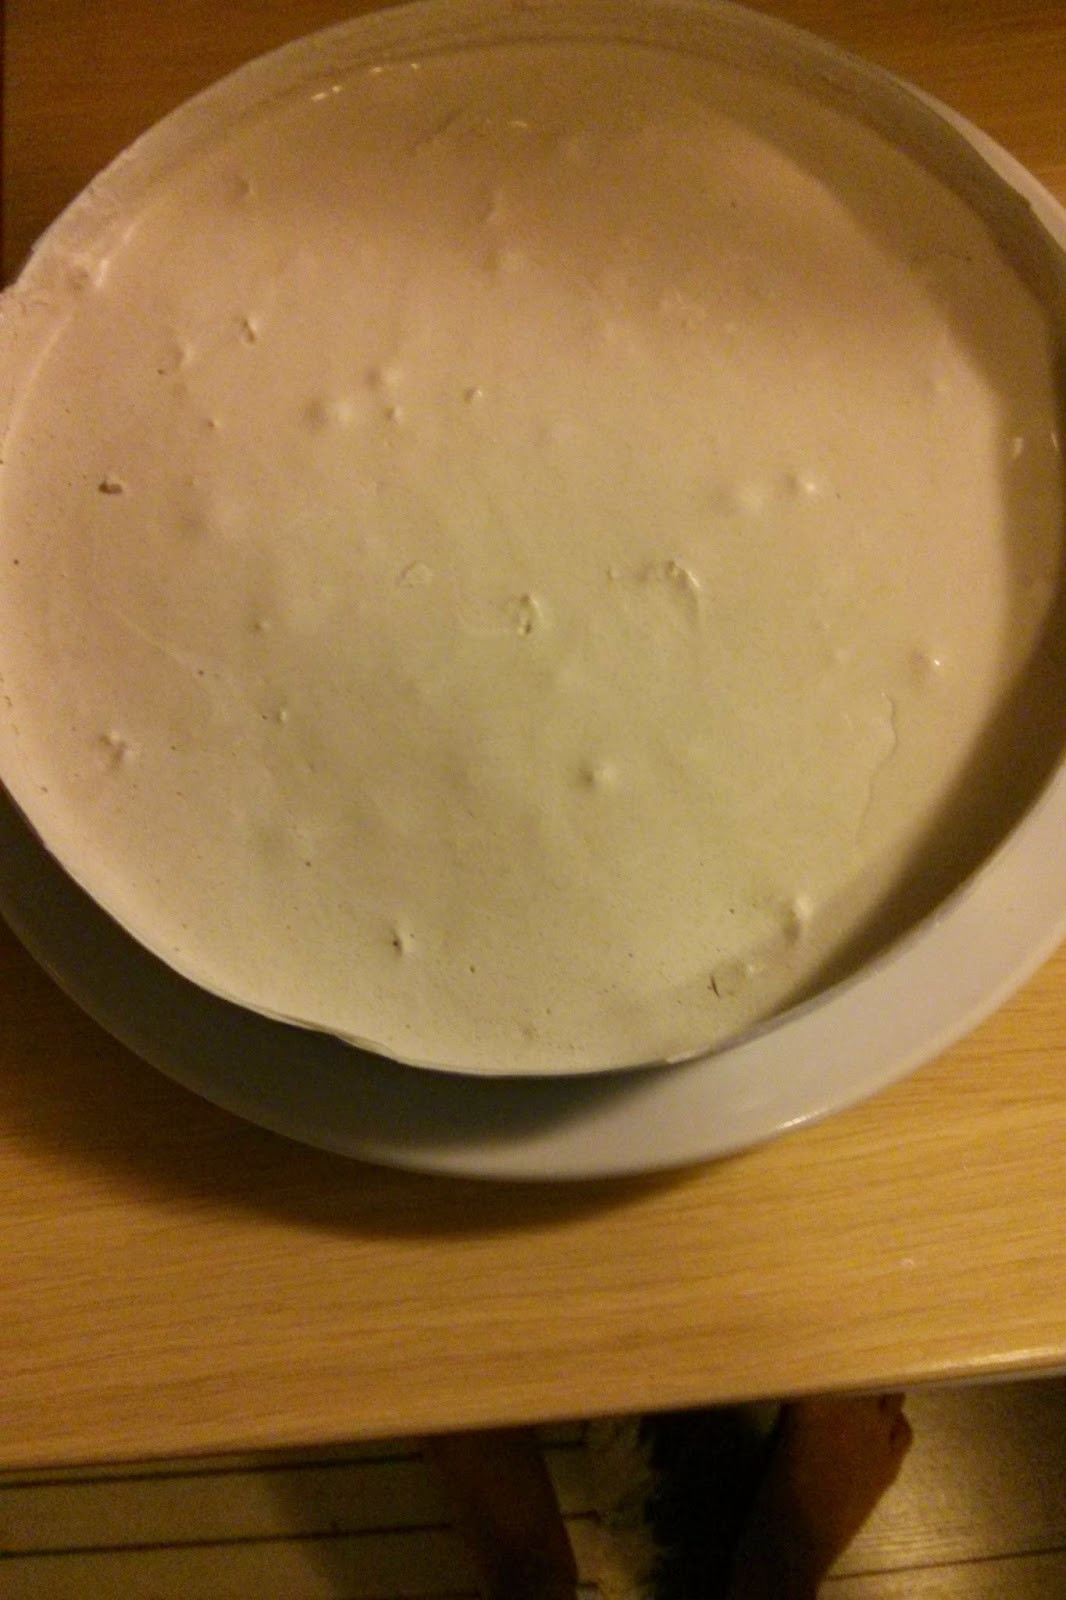 smooth plaster disk mistake on OneQuarterMama.ca